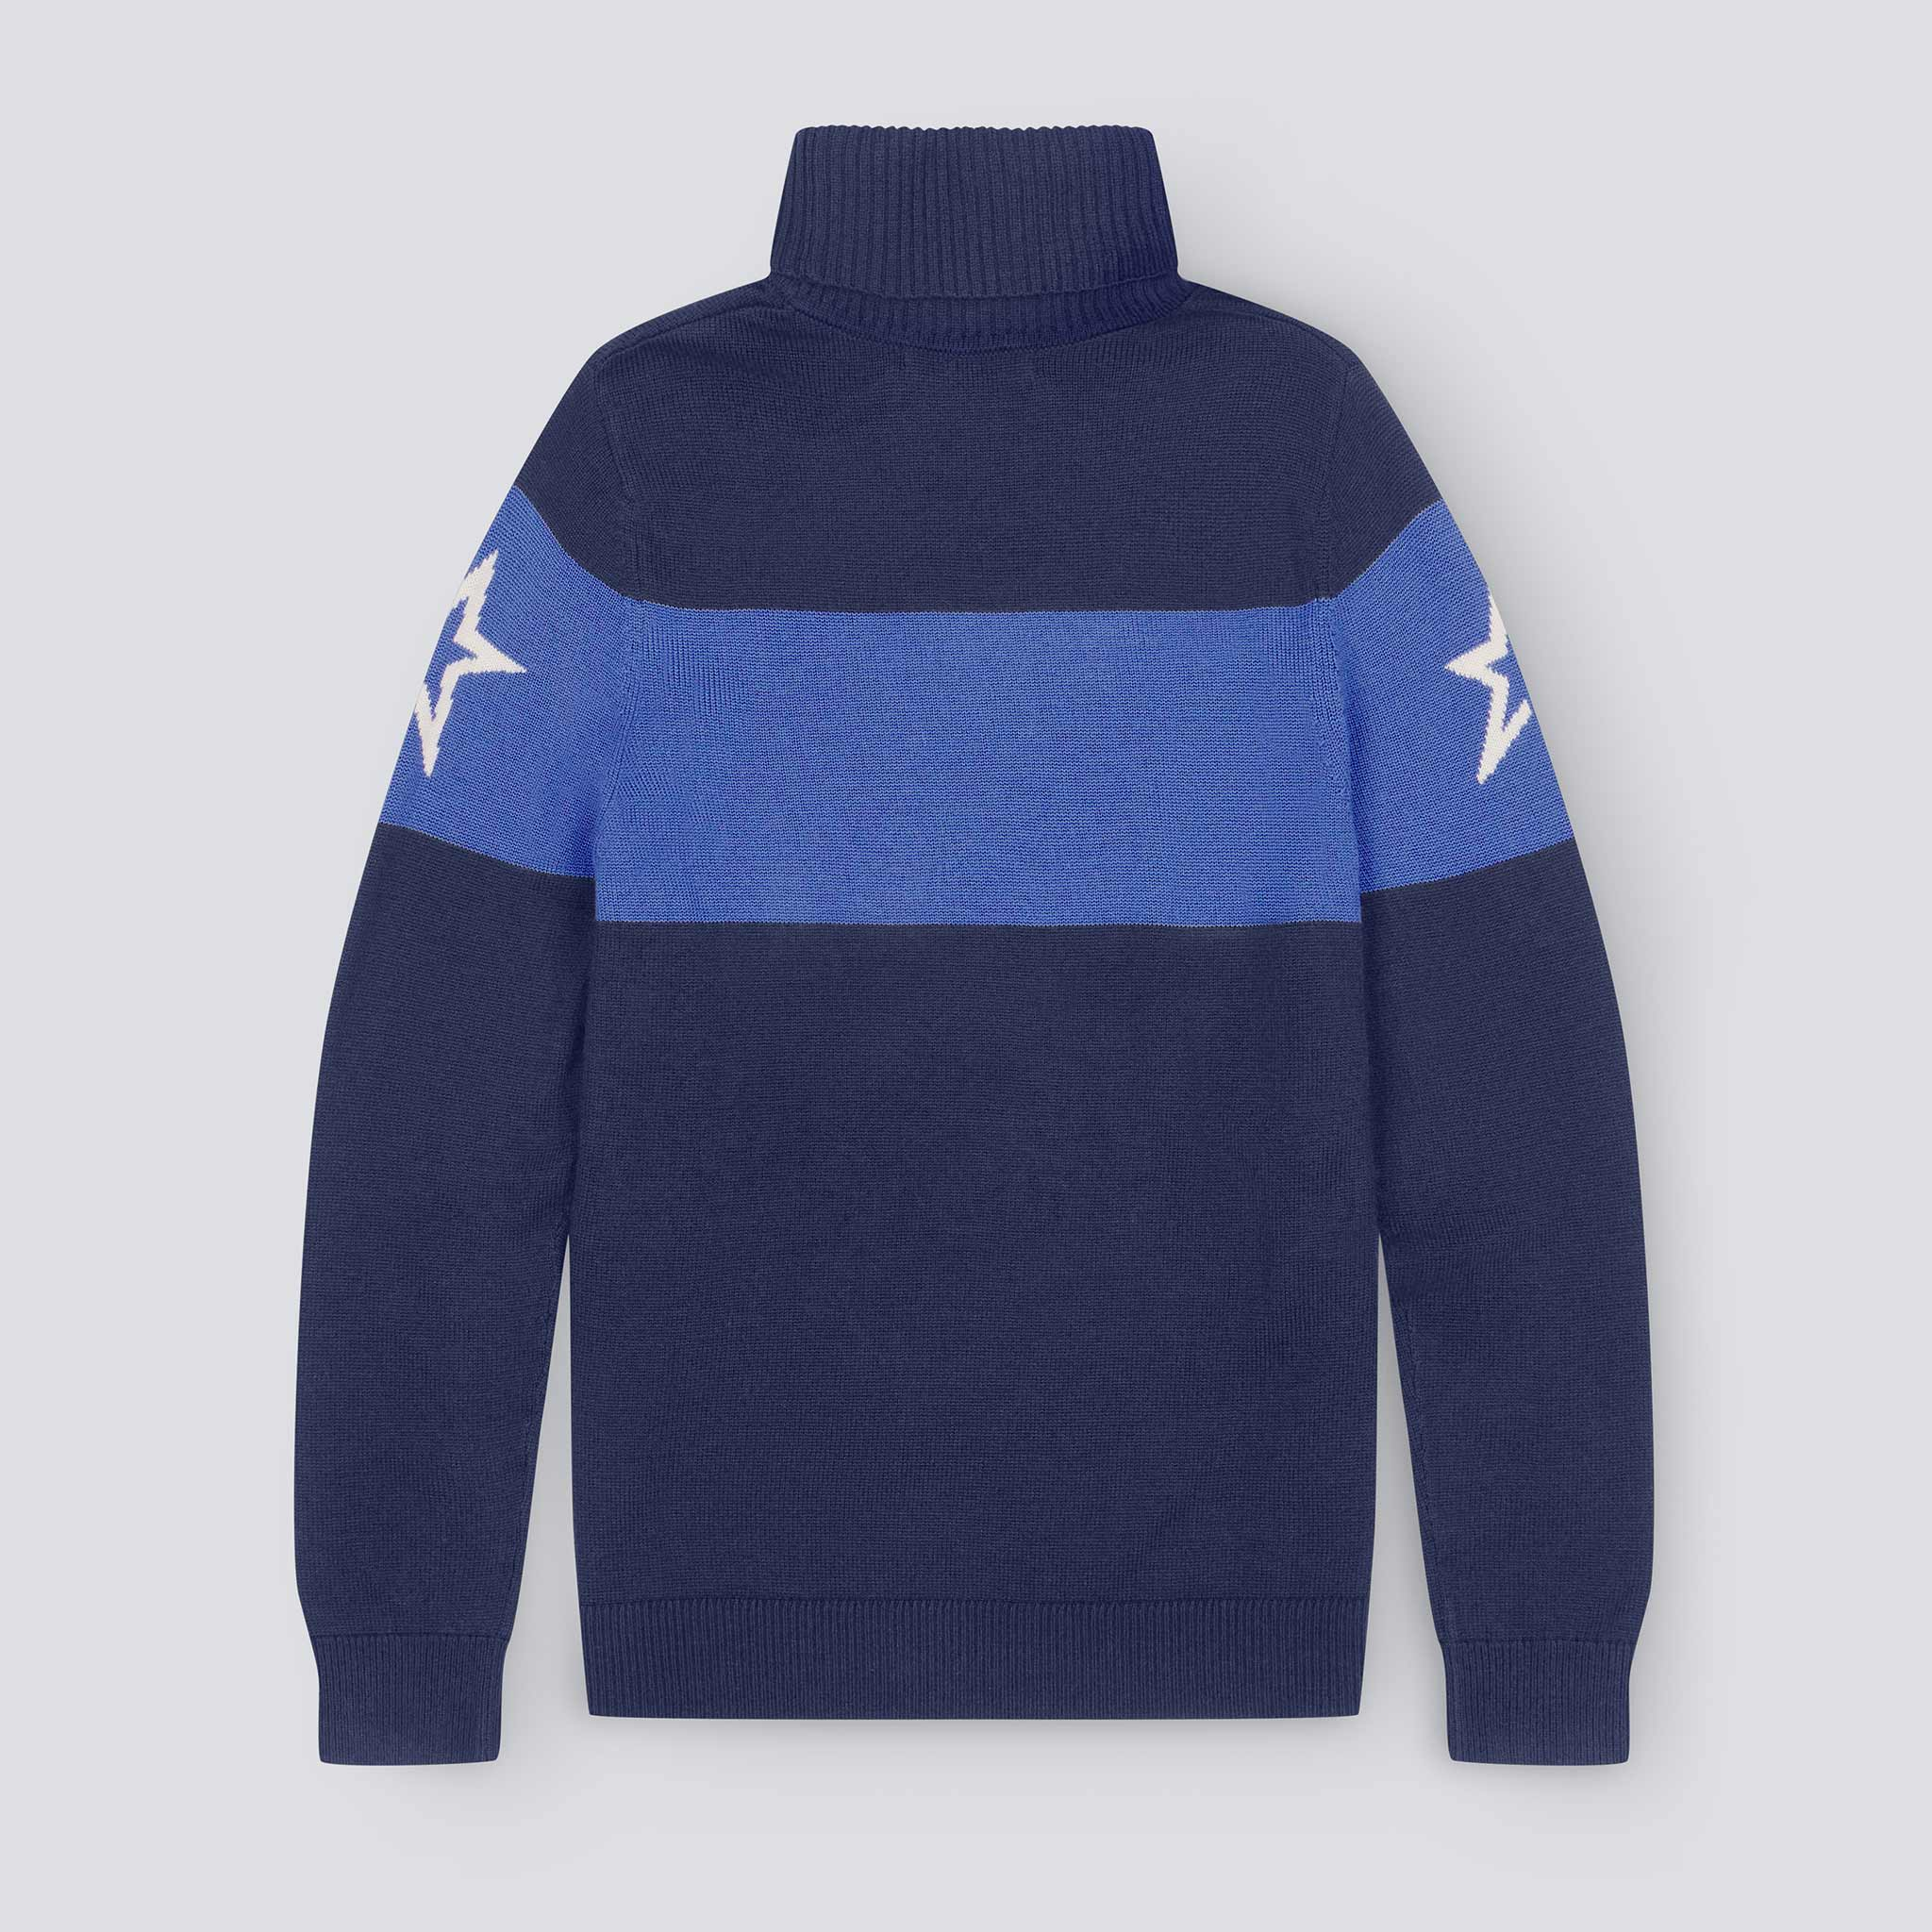 PM Turtle Neck Sweater